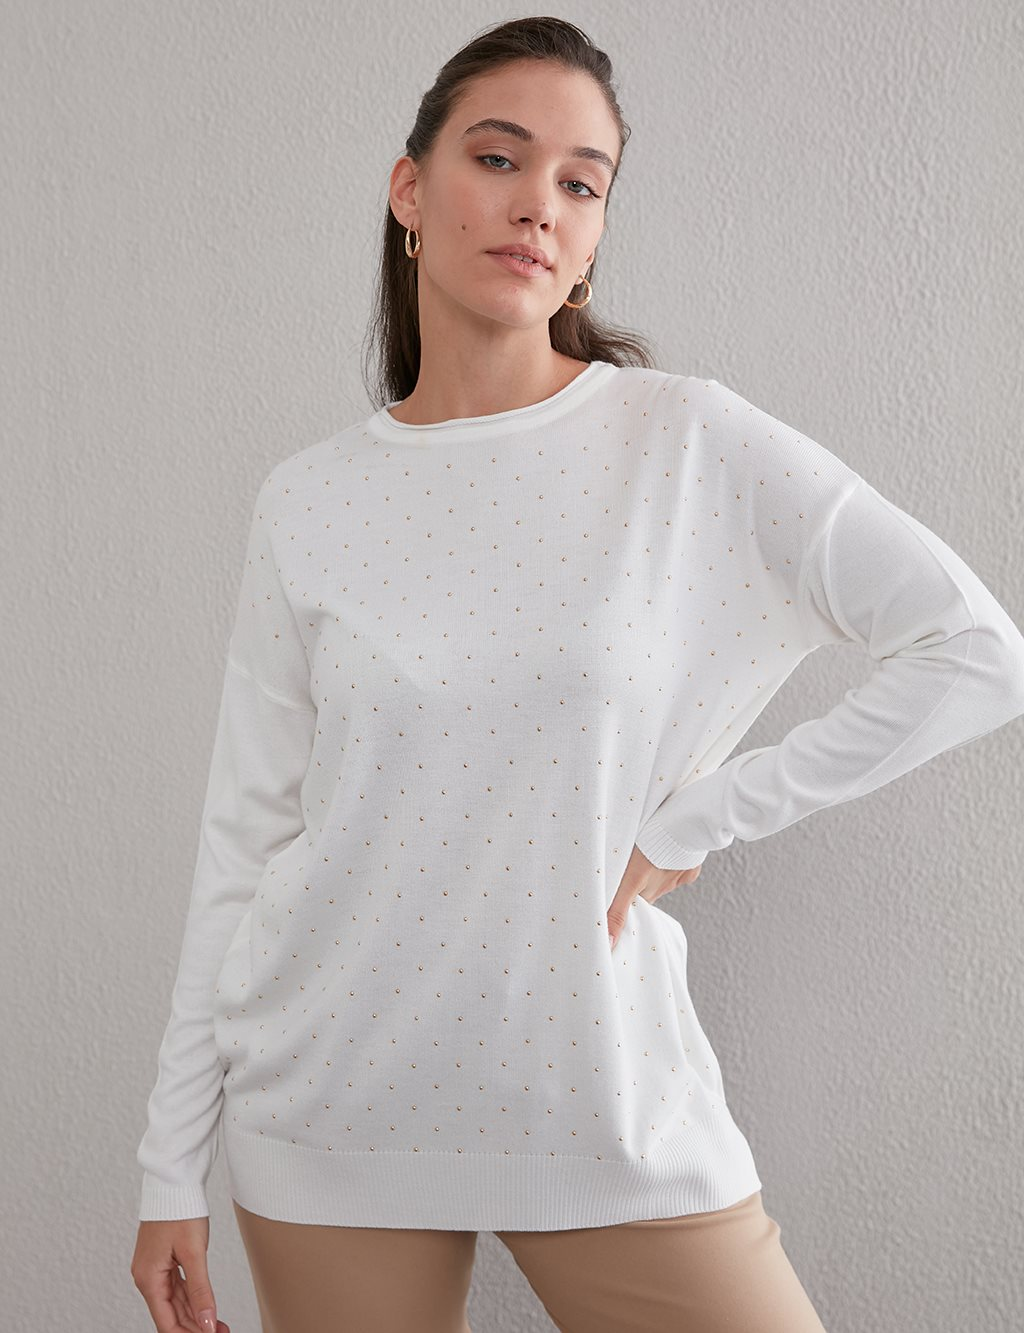 Metal Embroidered Knit Tunic A20 TRK22 Ecrue